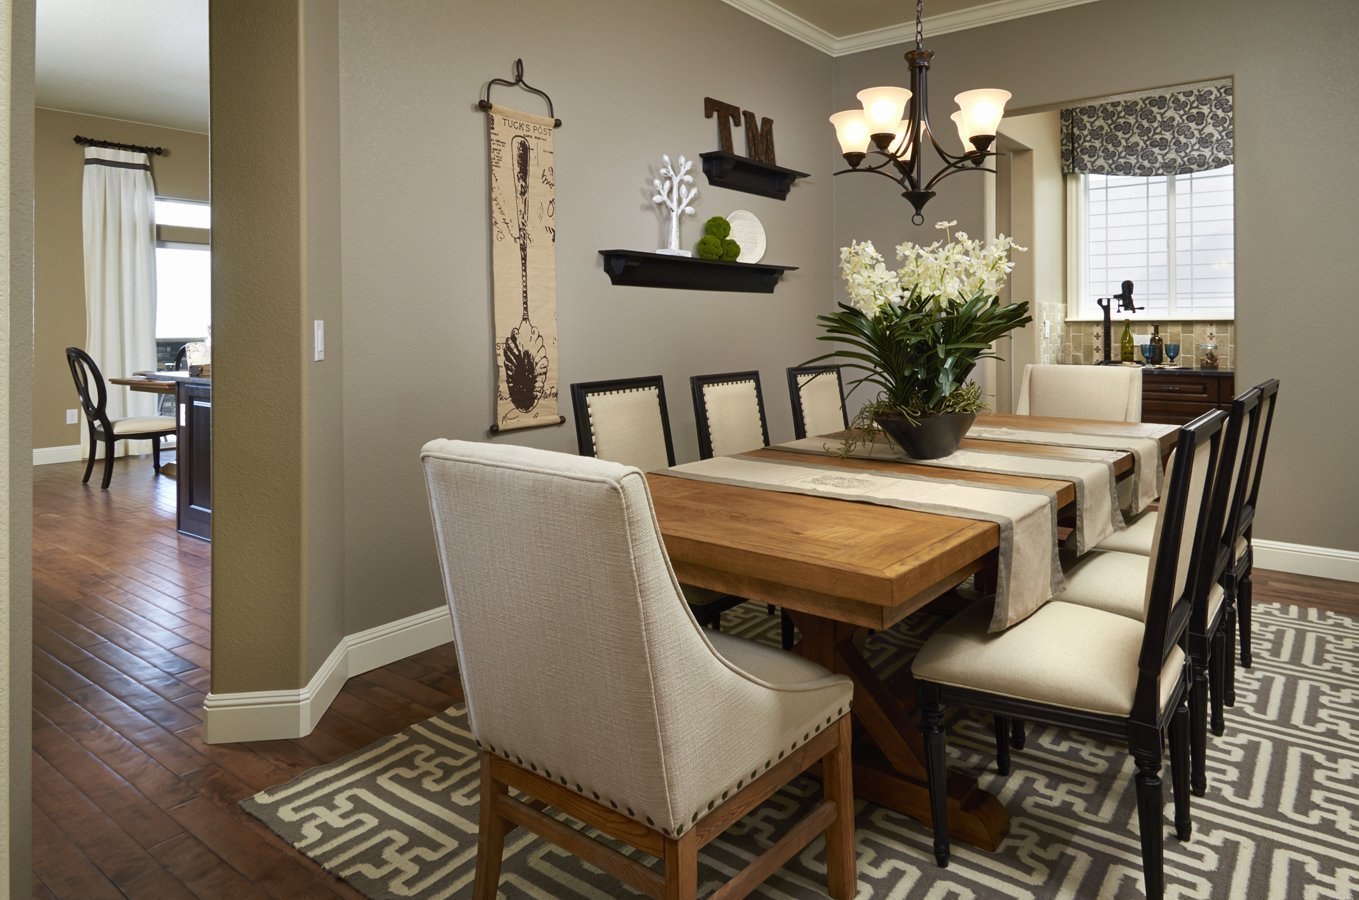 dining room table setting ideas dining room table setting ideas home furniture design 5408